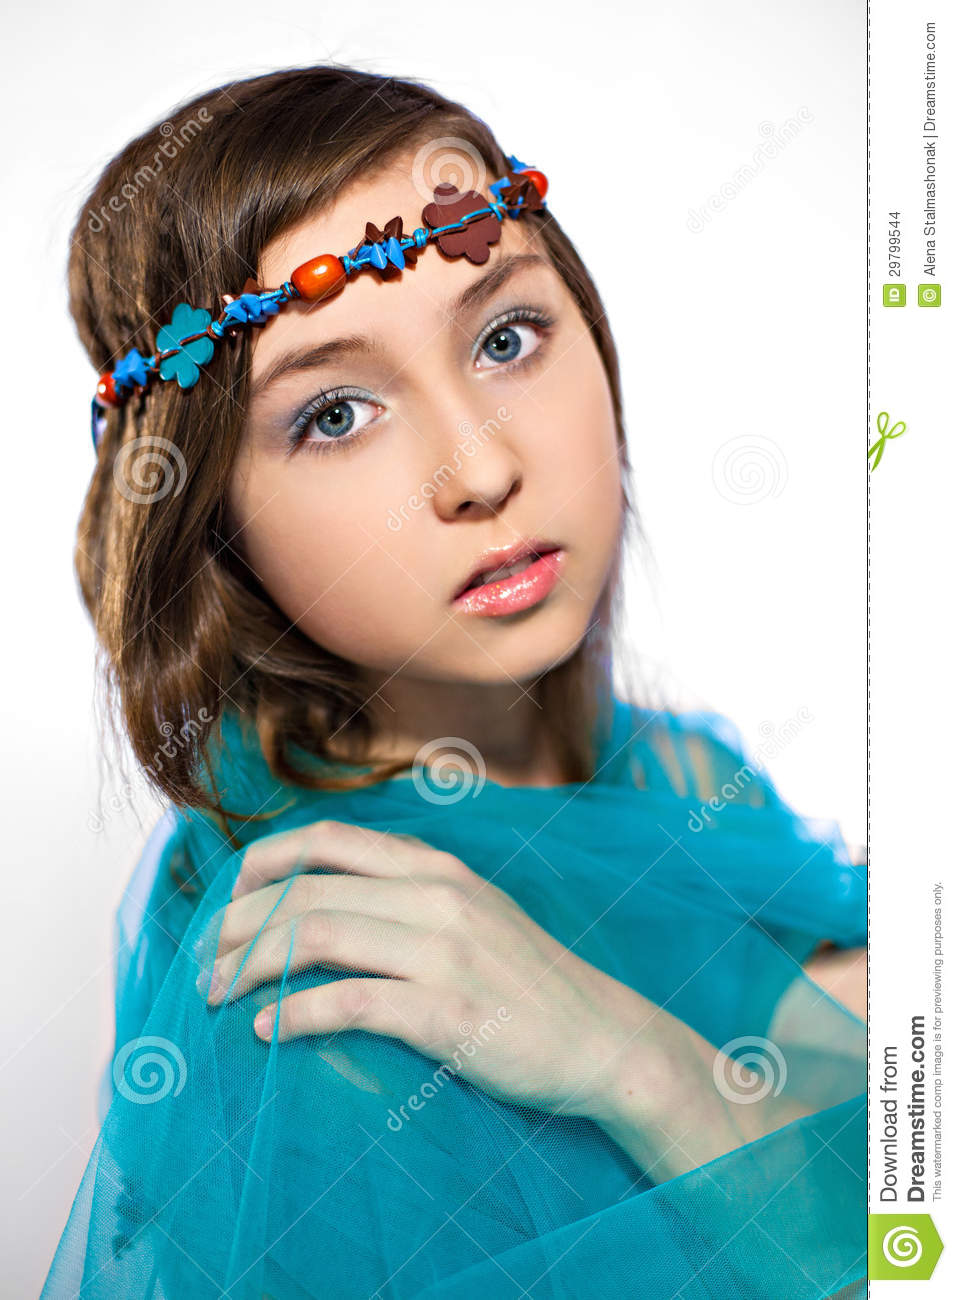 Awesome Nymph Stock Photo. Image Of Person, Sensuality